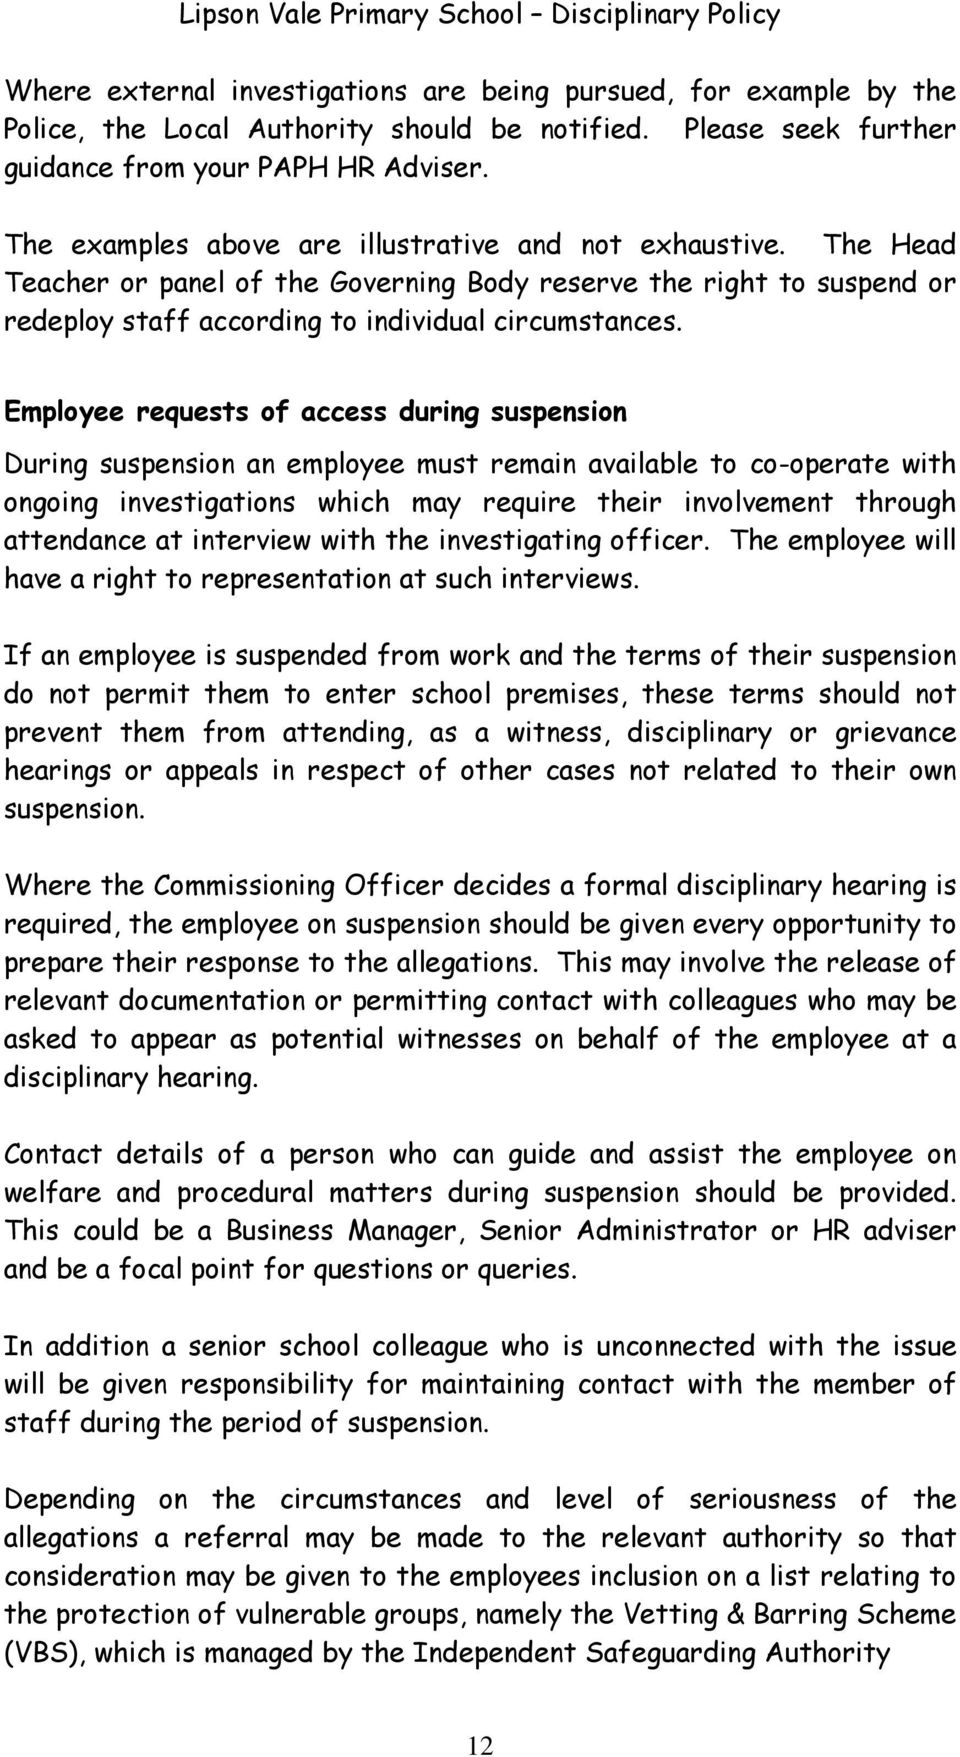 Employee requests of access during suspension During suspension an employee must remain available to co-operate with ongoing investigations which may require their involvement through attendance at